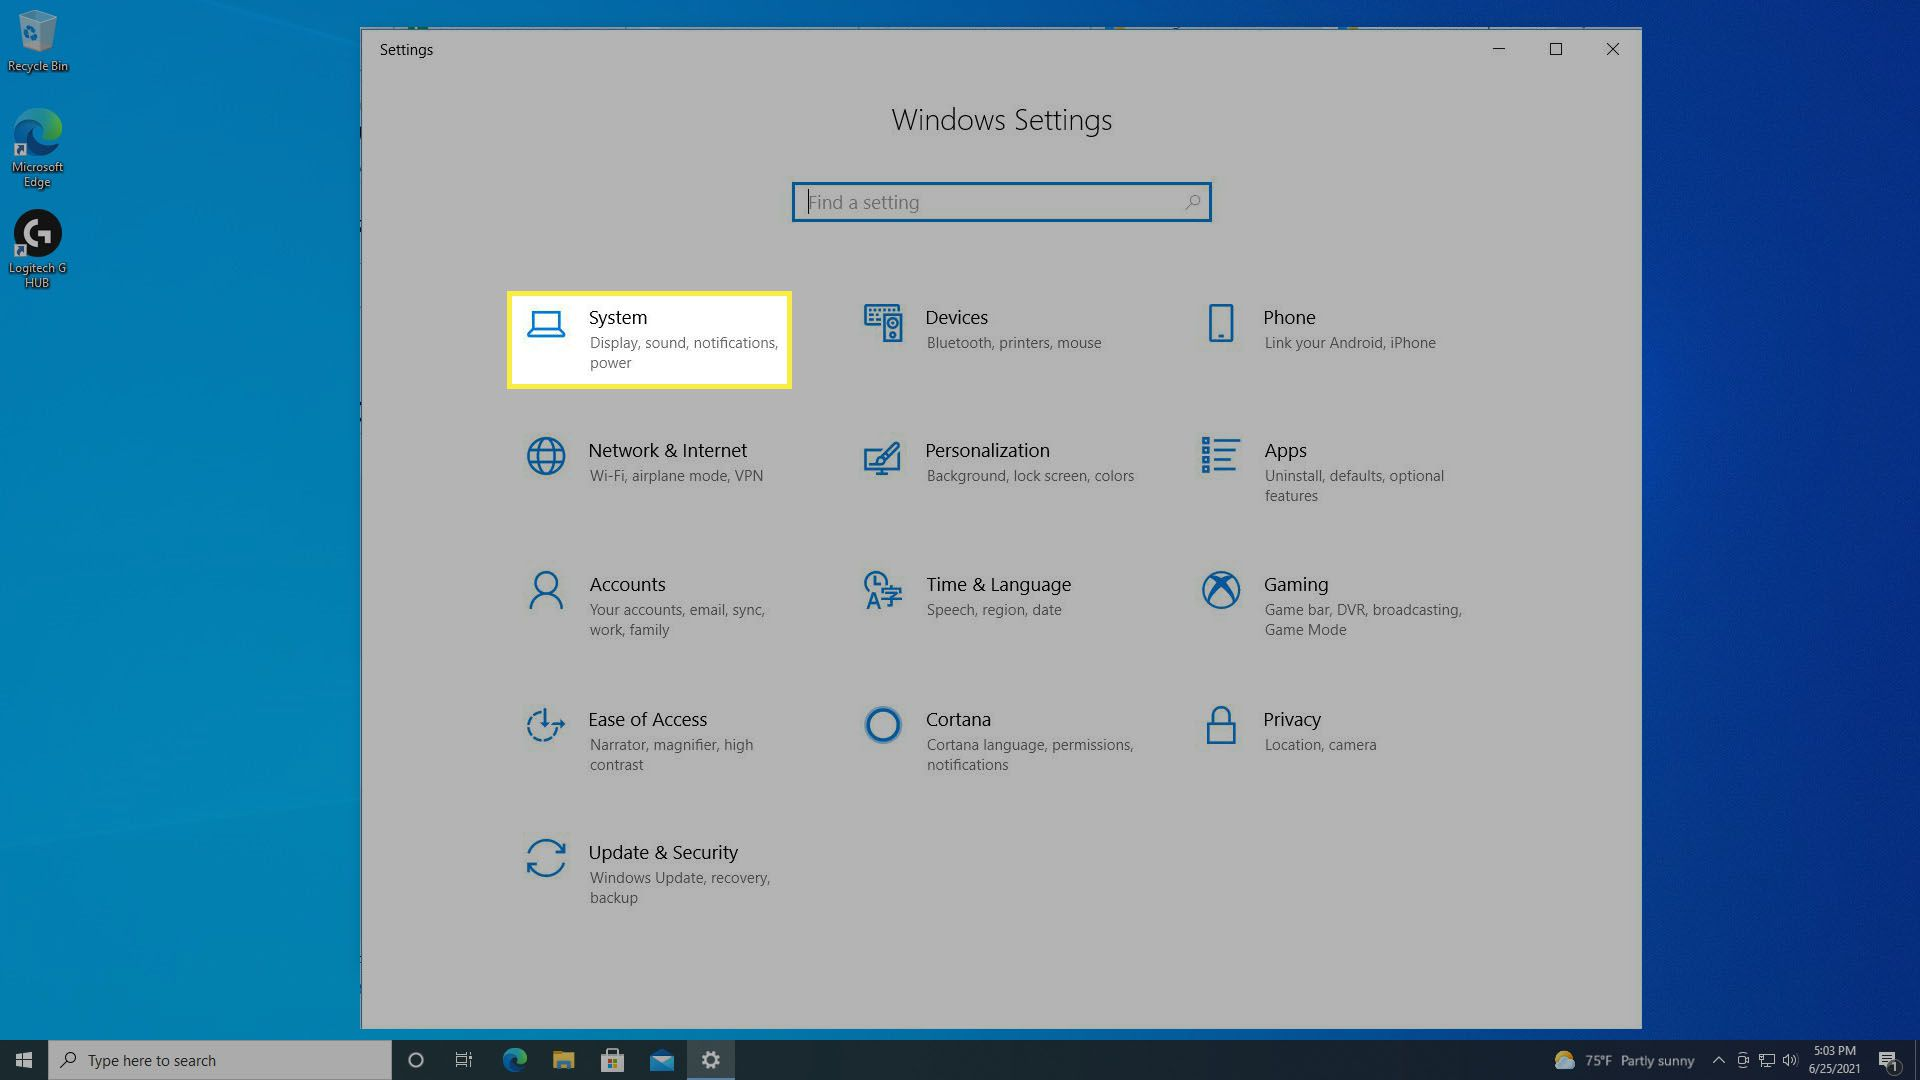 Selecting System from the Windows 10 Settings.